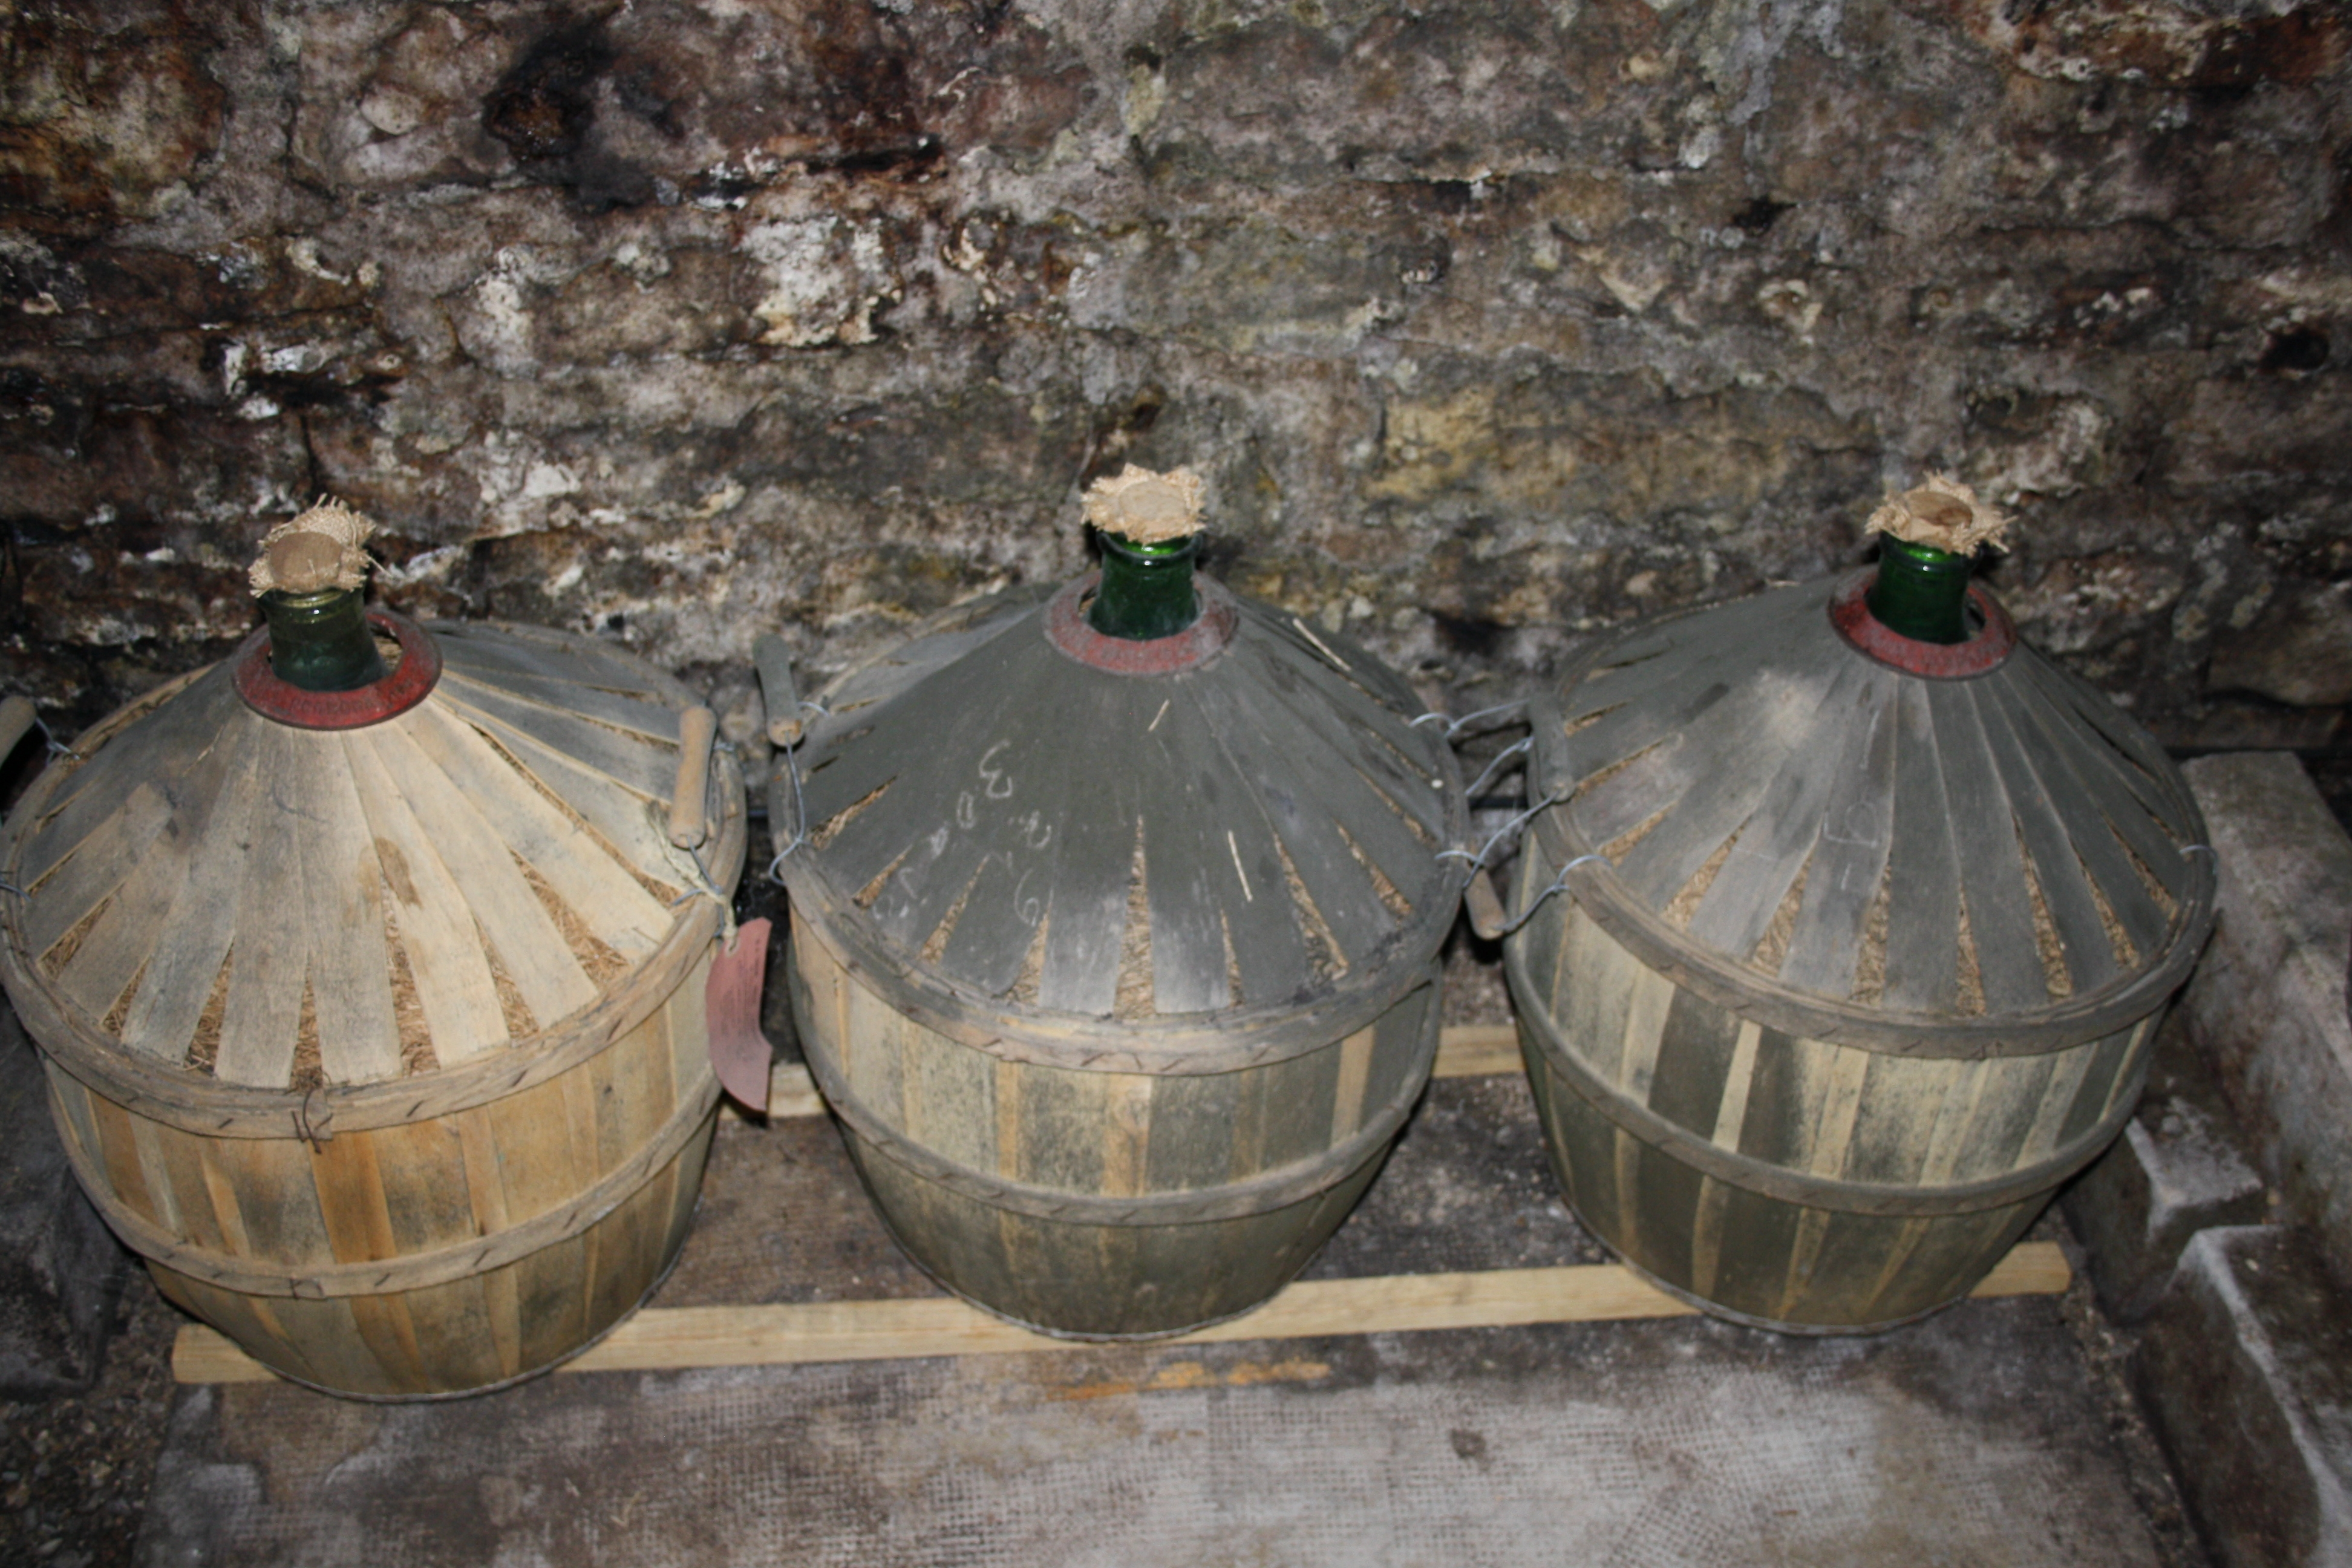 Glass jugs of Marc de Bourgogne